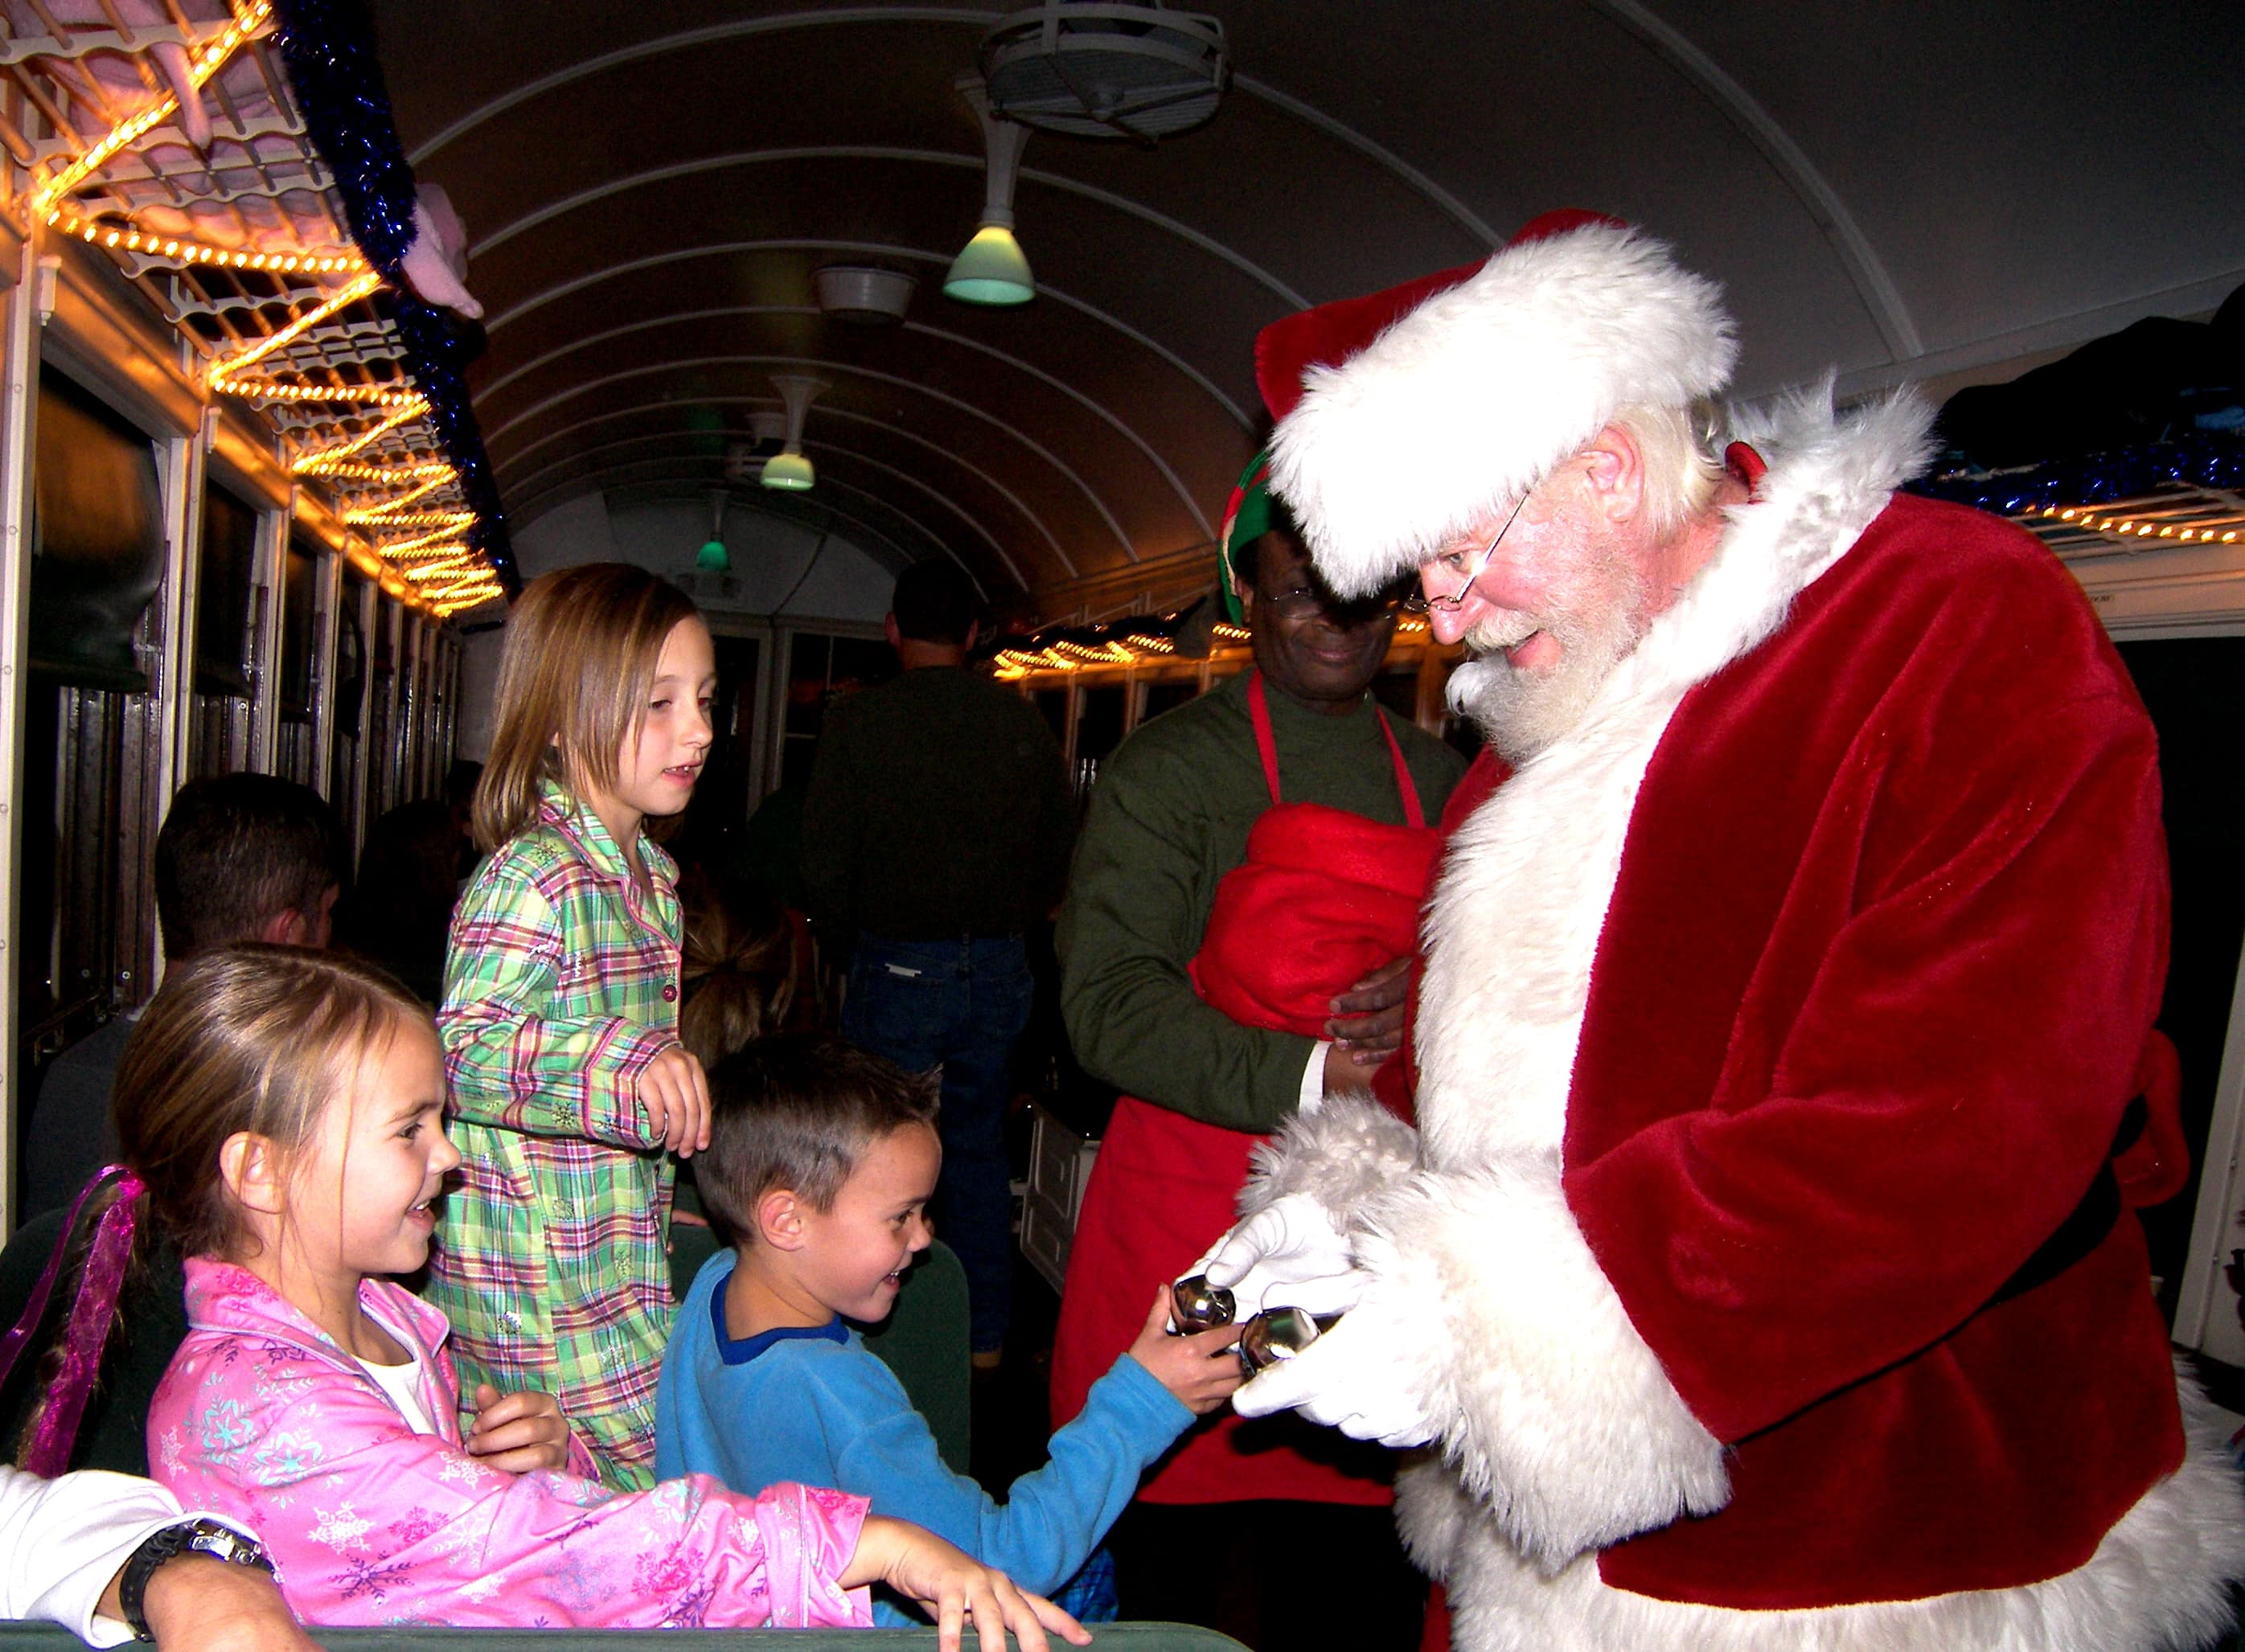 Christmas Bucket List. 10 Ways to Feel the Christmas Spirit by Modern Honey. Polar Express Santa Claus.